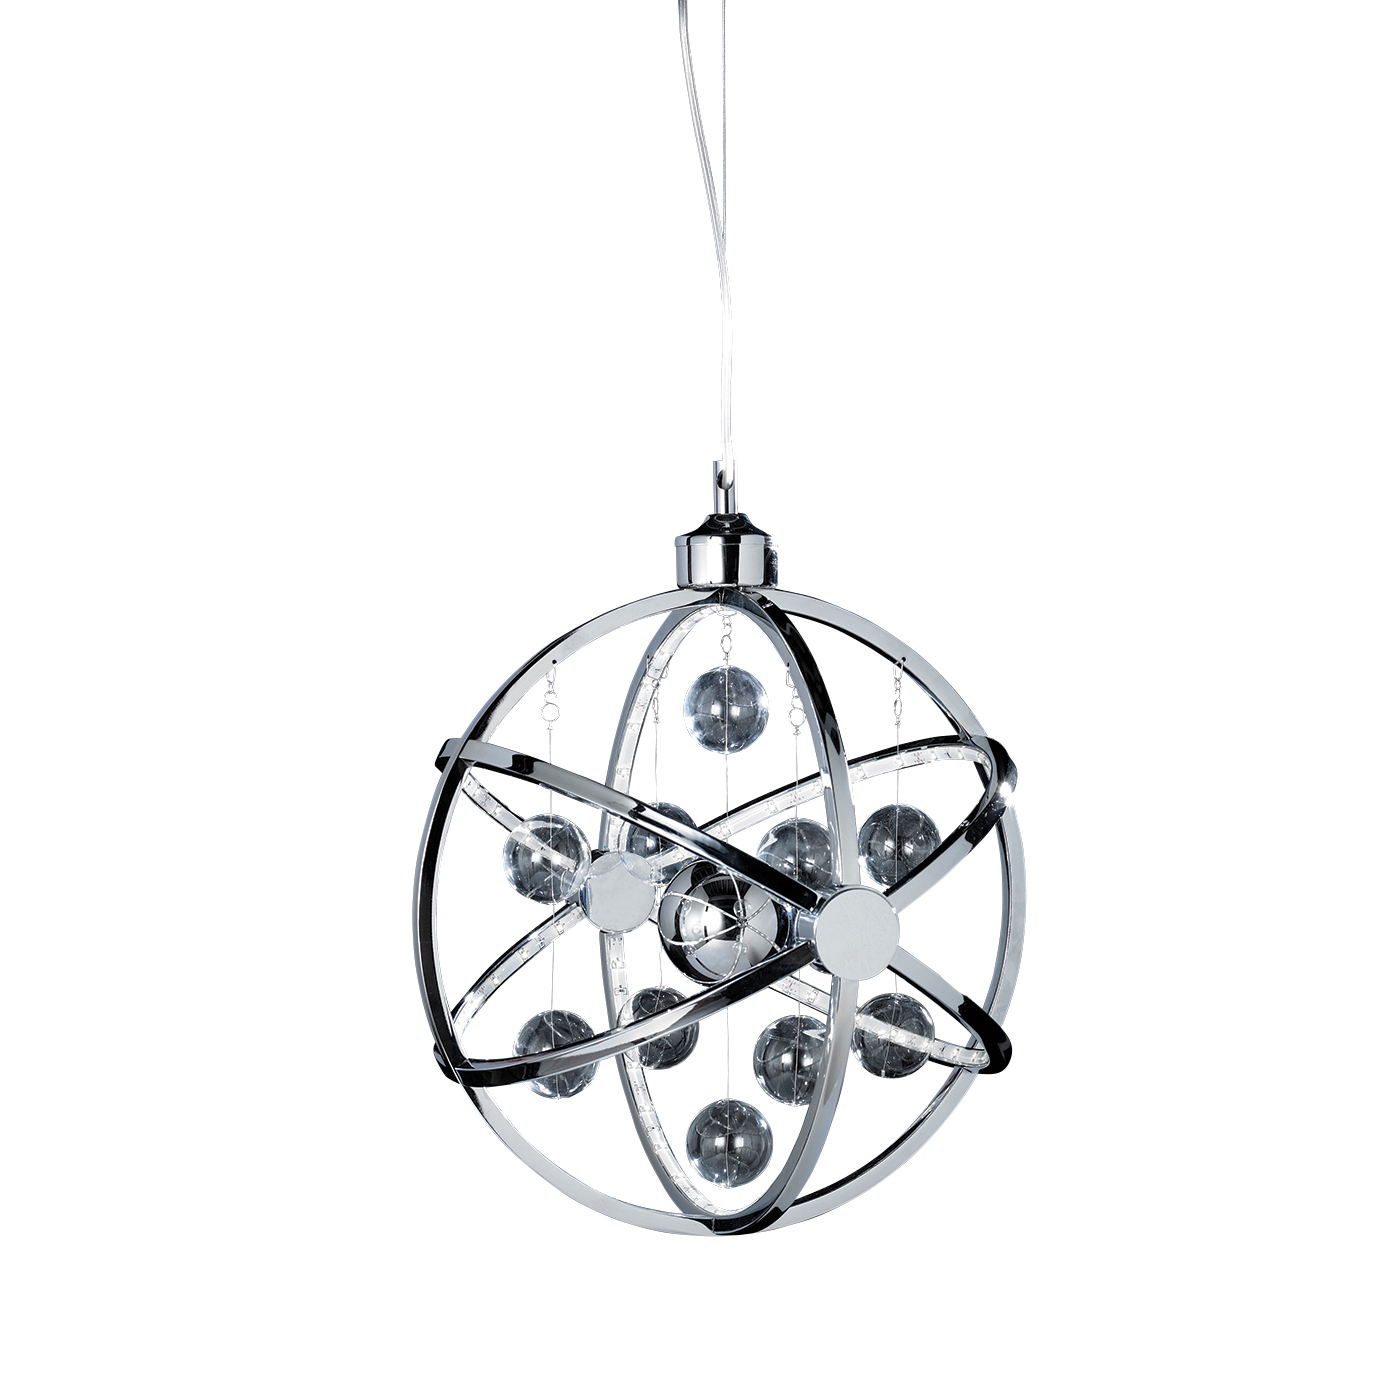 Endon Muni 390mm pendant 7.5W Chrome effect plate with clear chrome glass balls